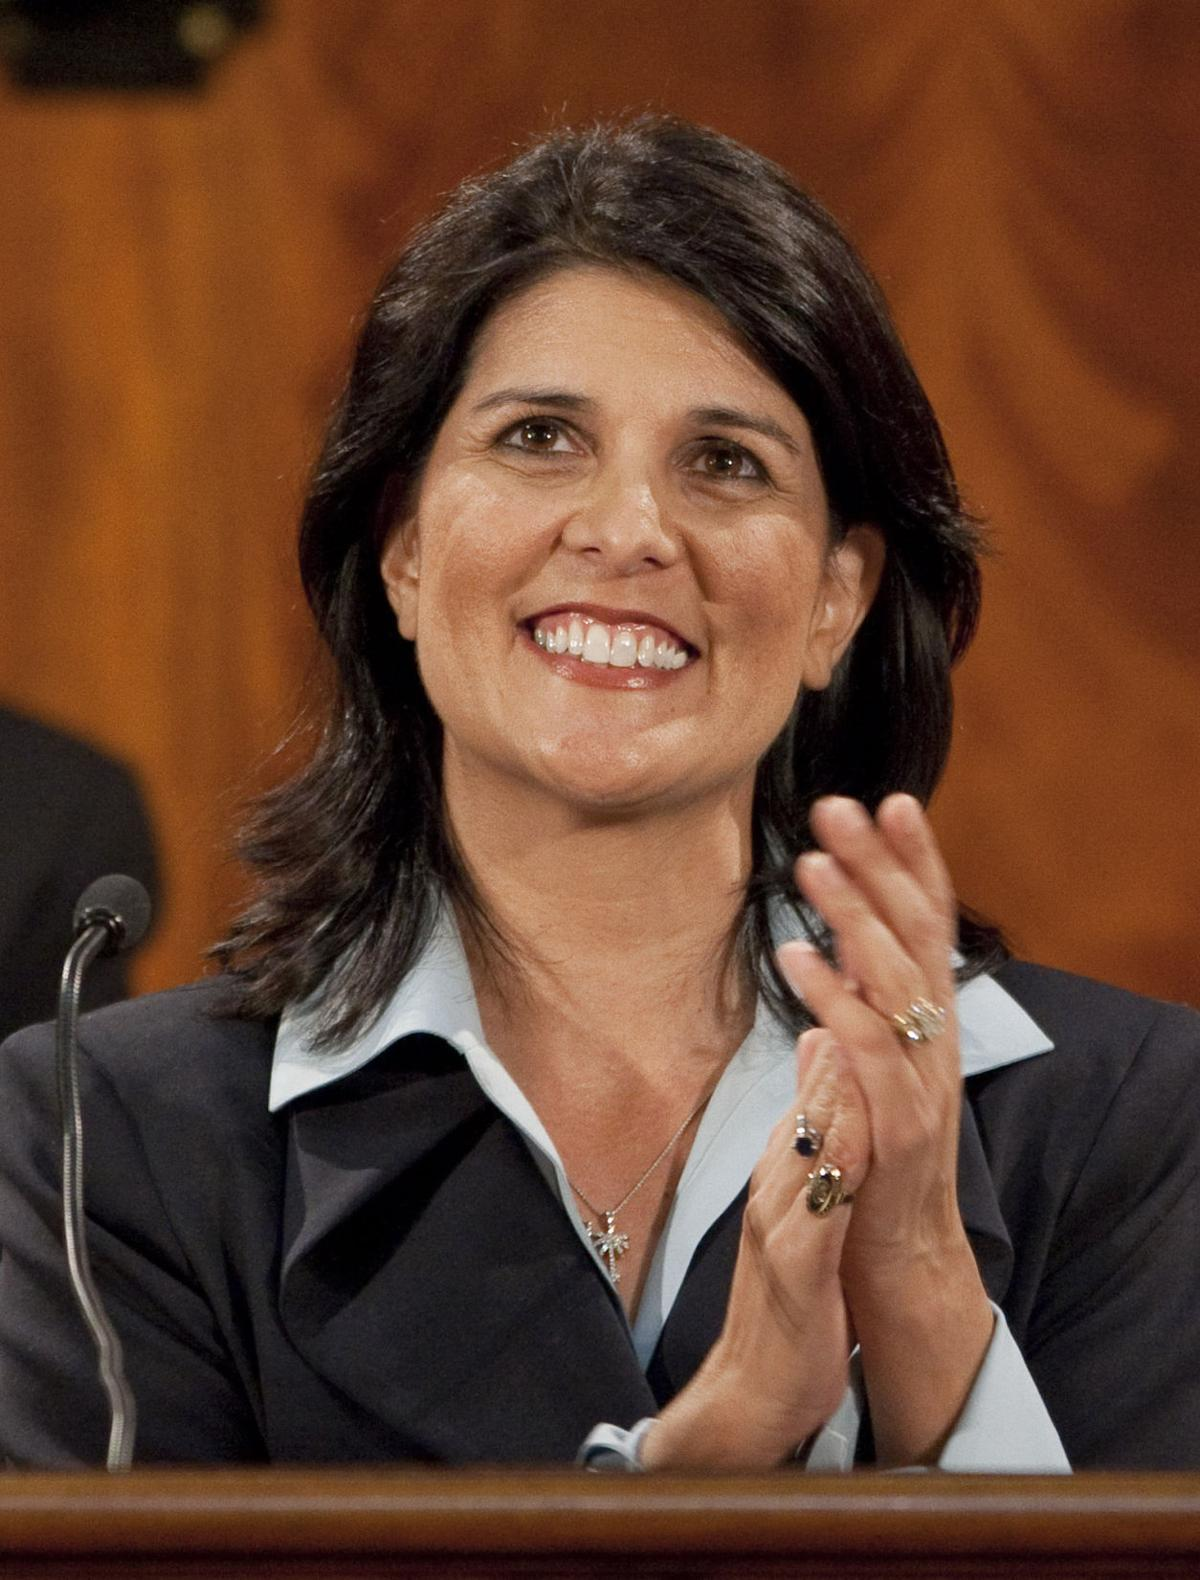 Haley won't be on road for Rubio this week but will in March